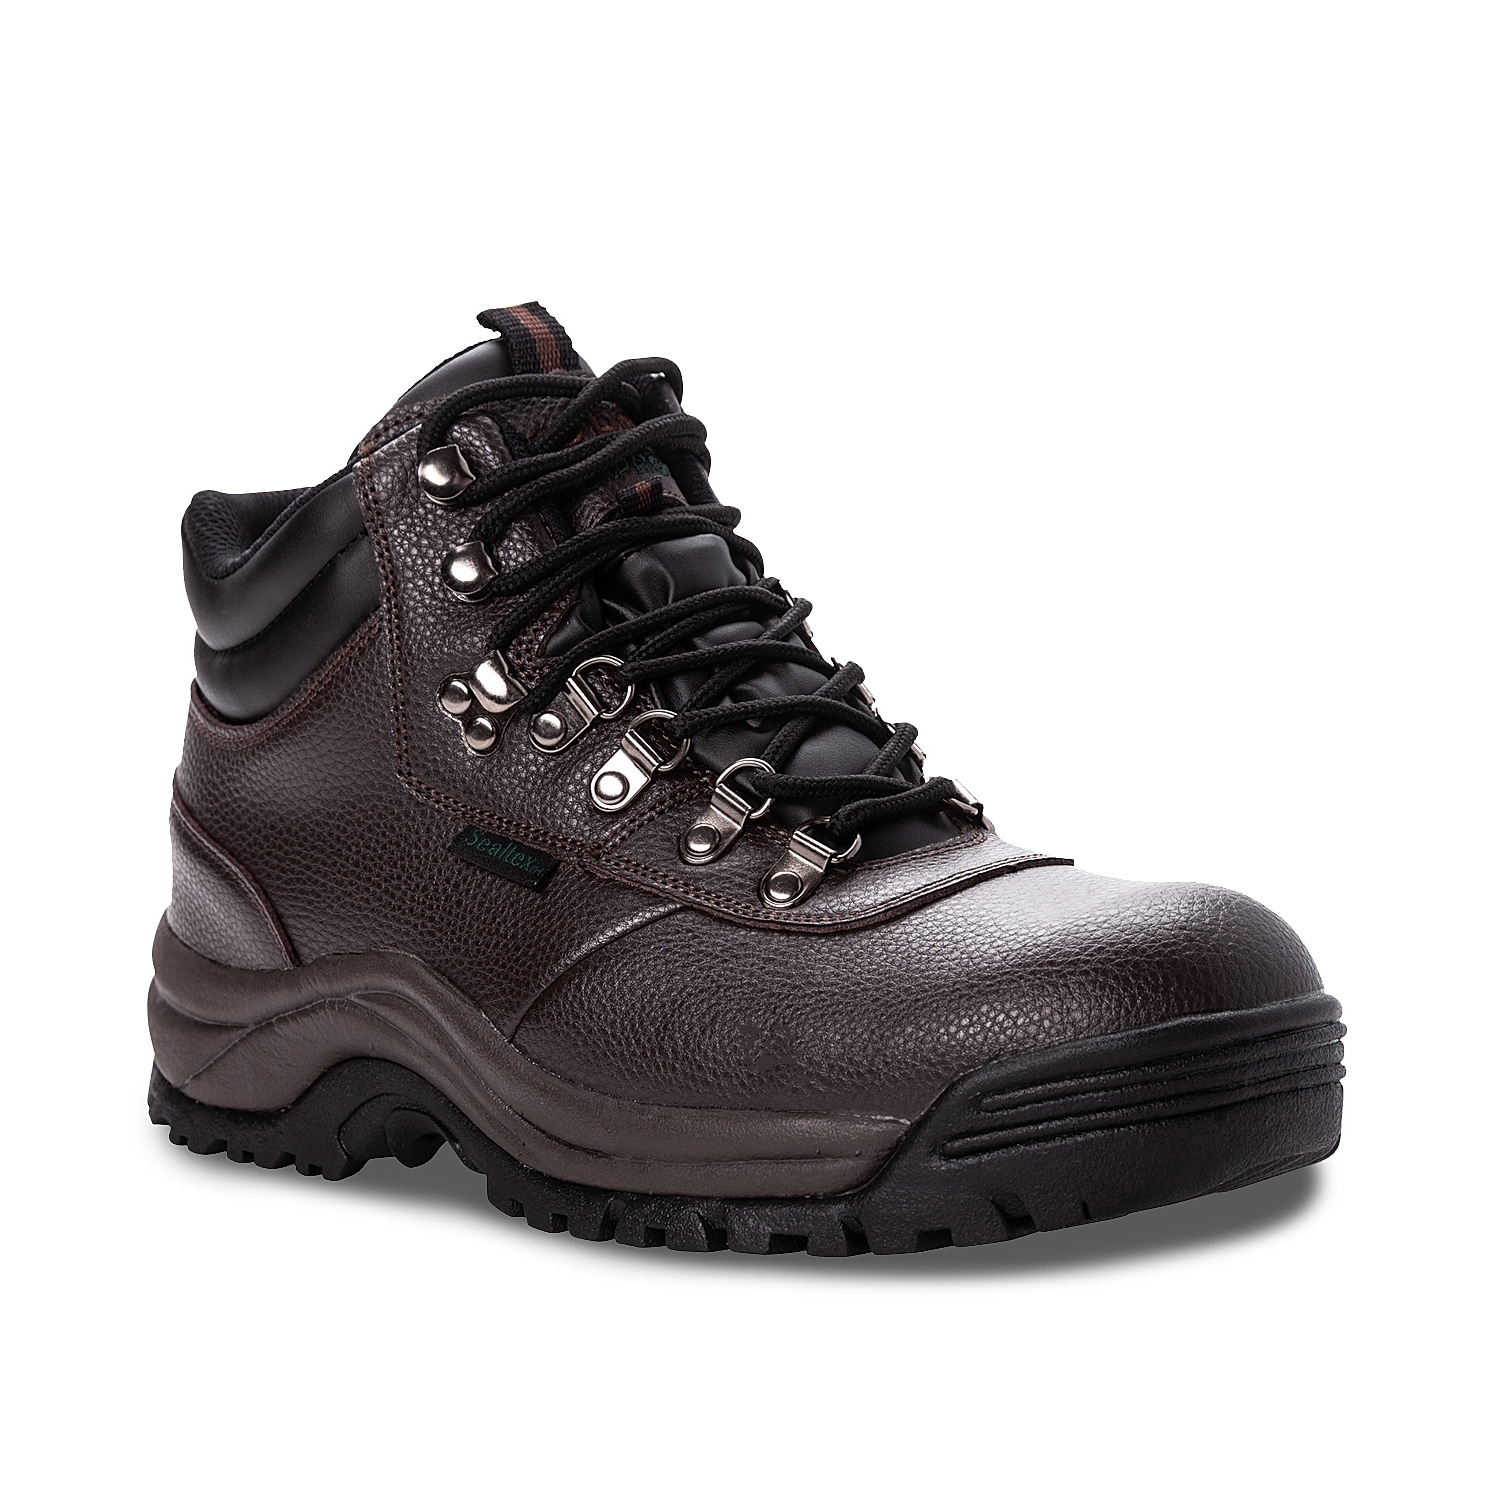 The Shield Walker hiking boot from Propet will keep your feet supported for any activity. With a work-appropriate composite toe and speed-lacing closure, this waterproof boot will become an instant staple.